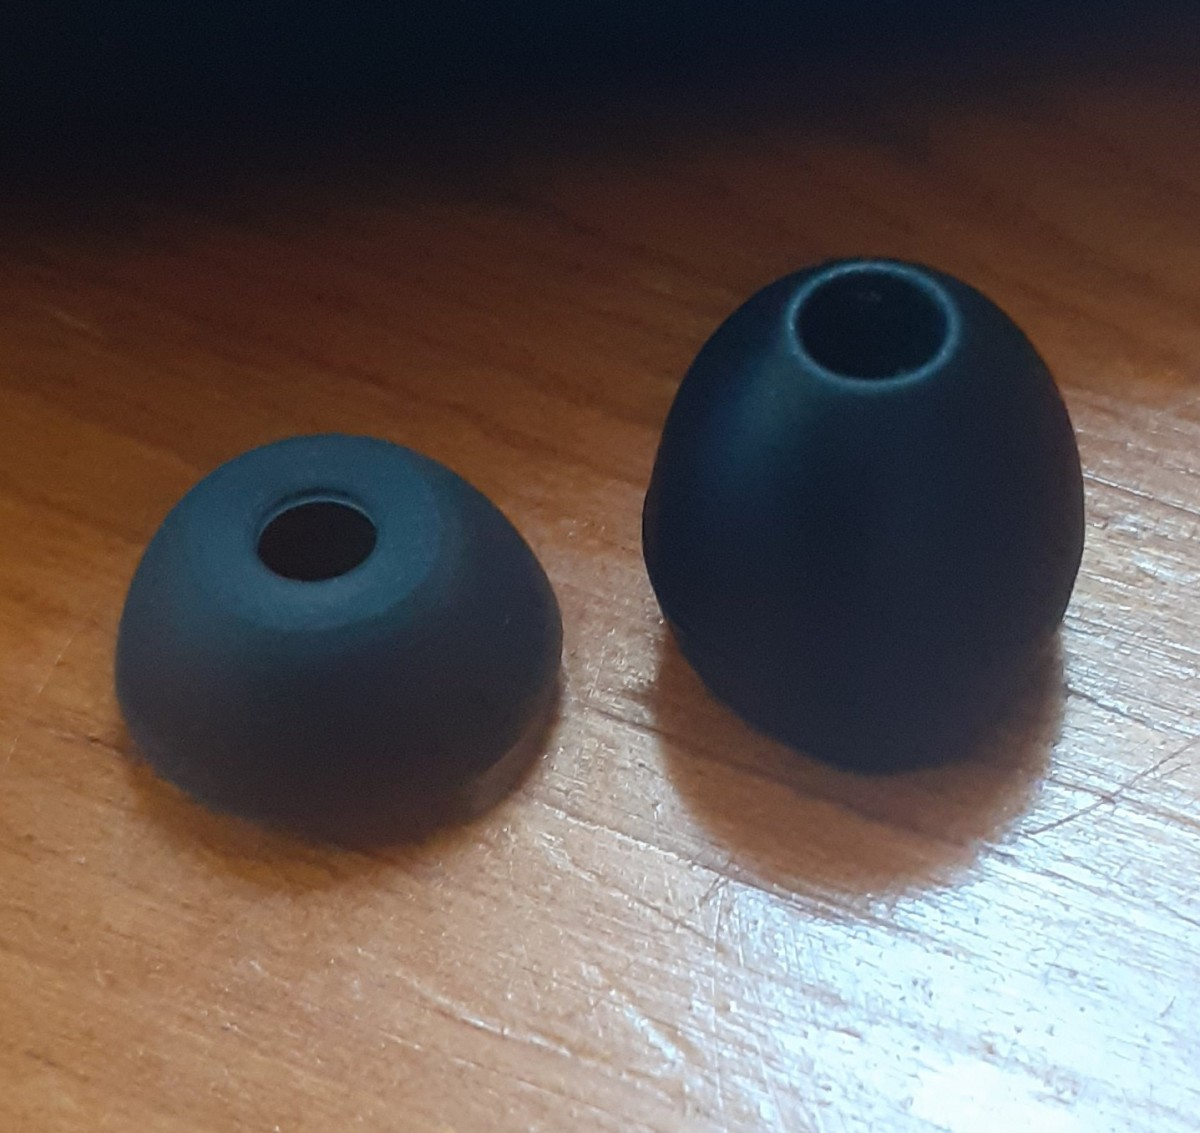 Original silicone tips on the left.